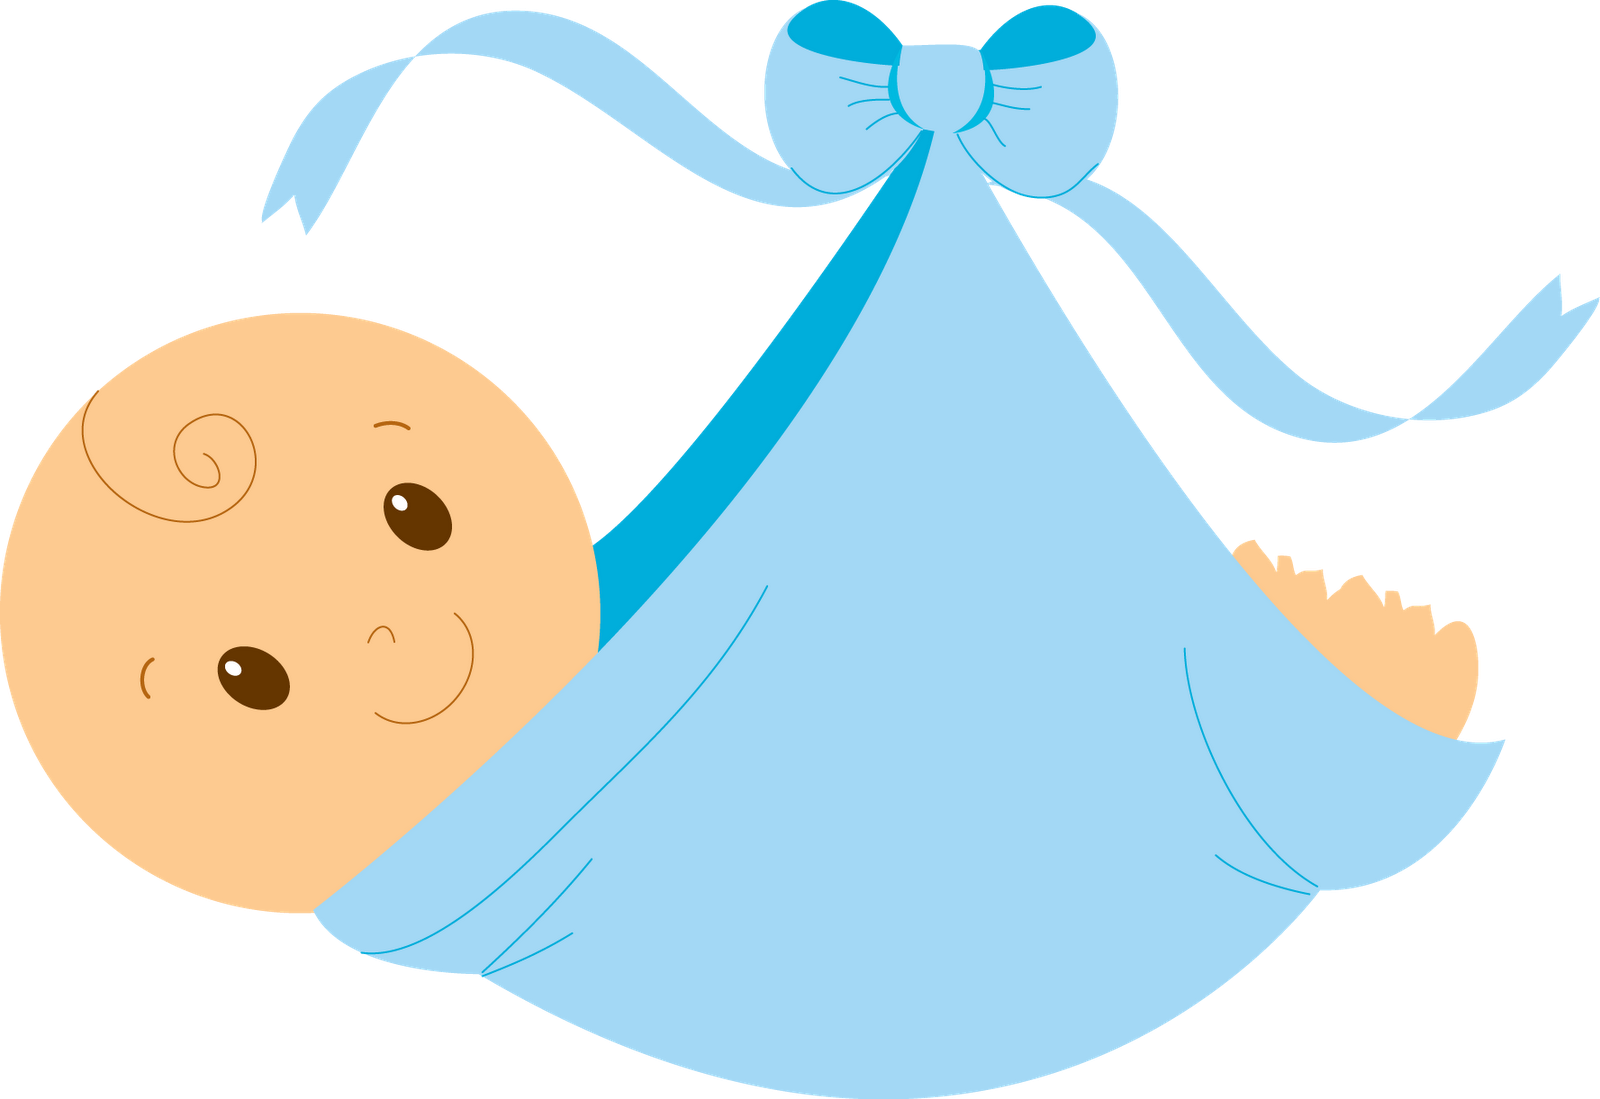 Free Clip Art For Baby Boy - ClipArt Best